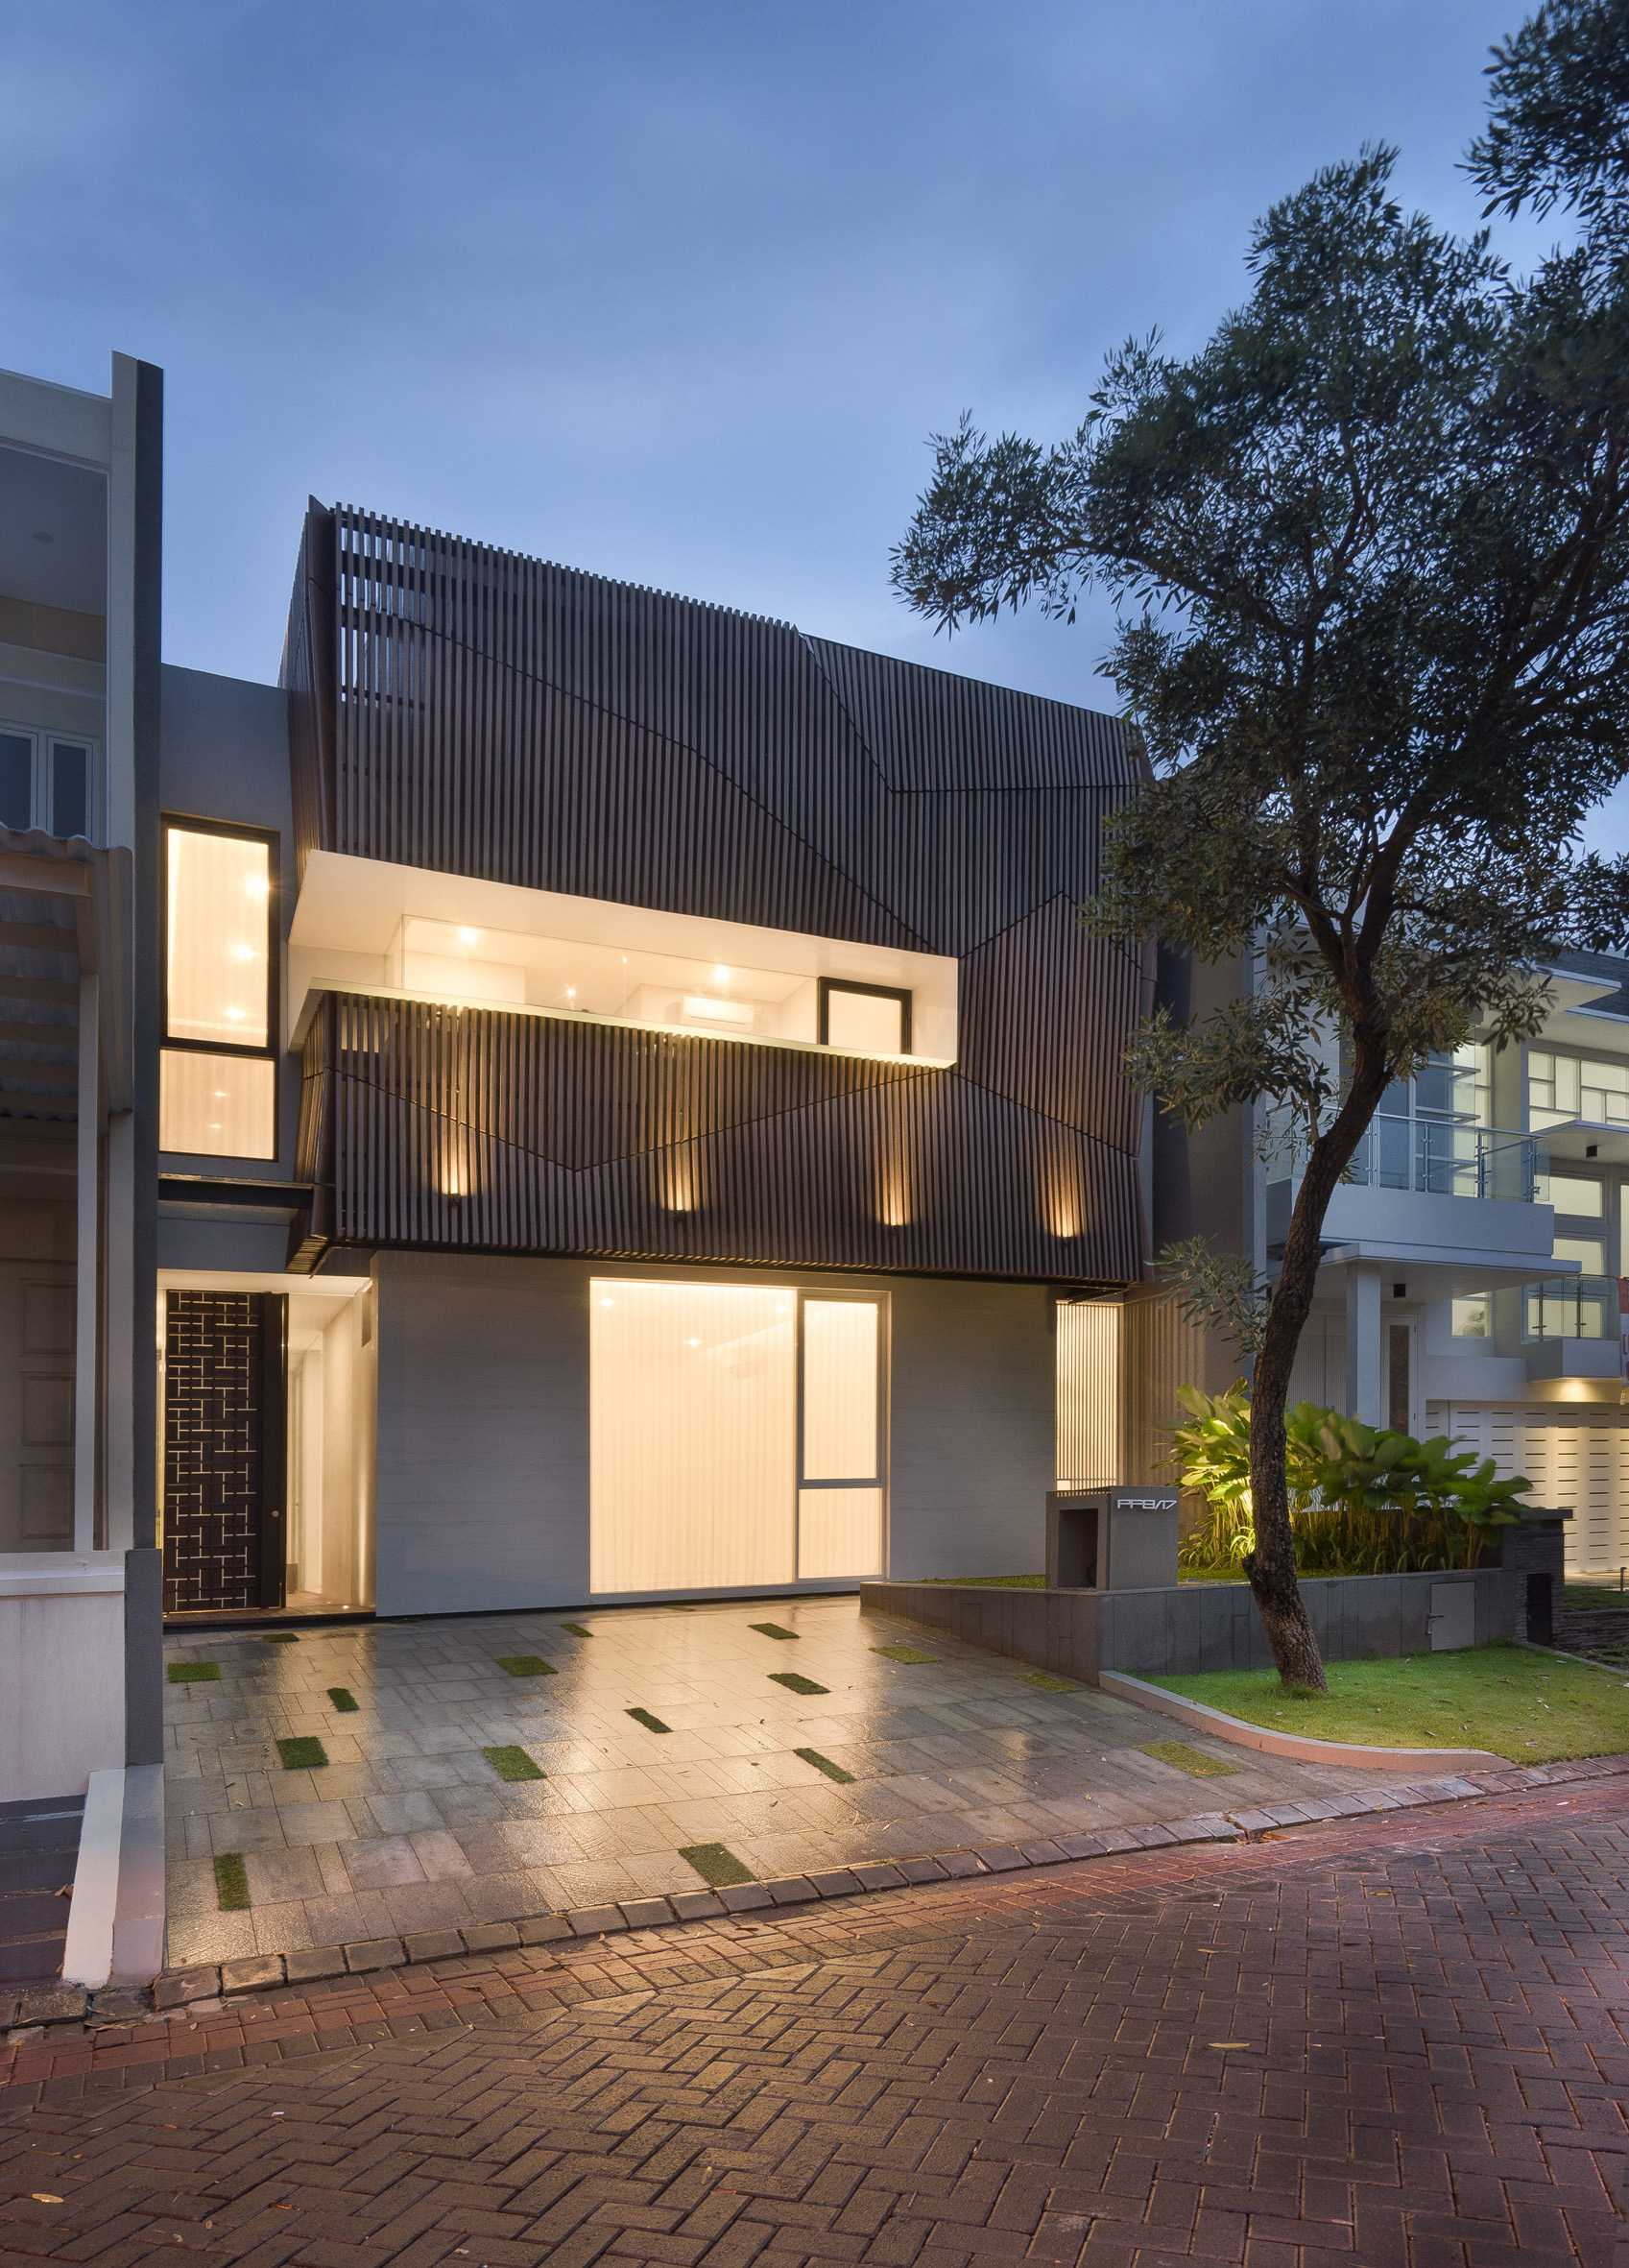 "Simple Projects Architecture ""s"" House Pakuwon Indah, Surabaya - Indonesia Pakuwon Indah, Surabaya - Indonesia Facade Modern  32966"